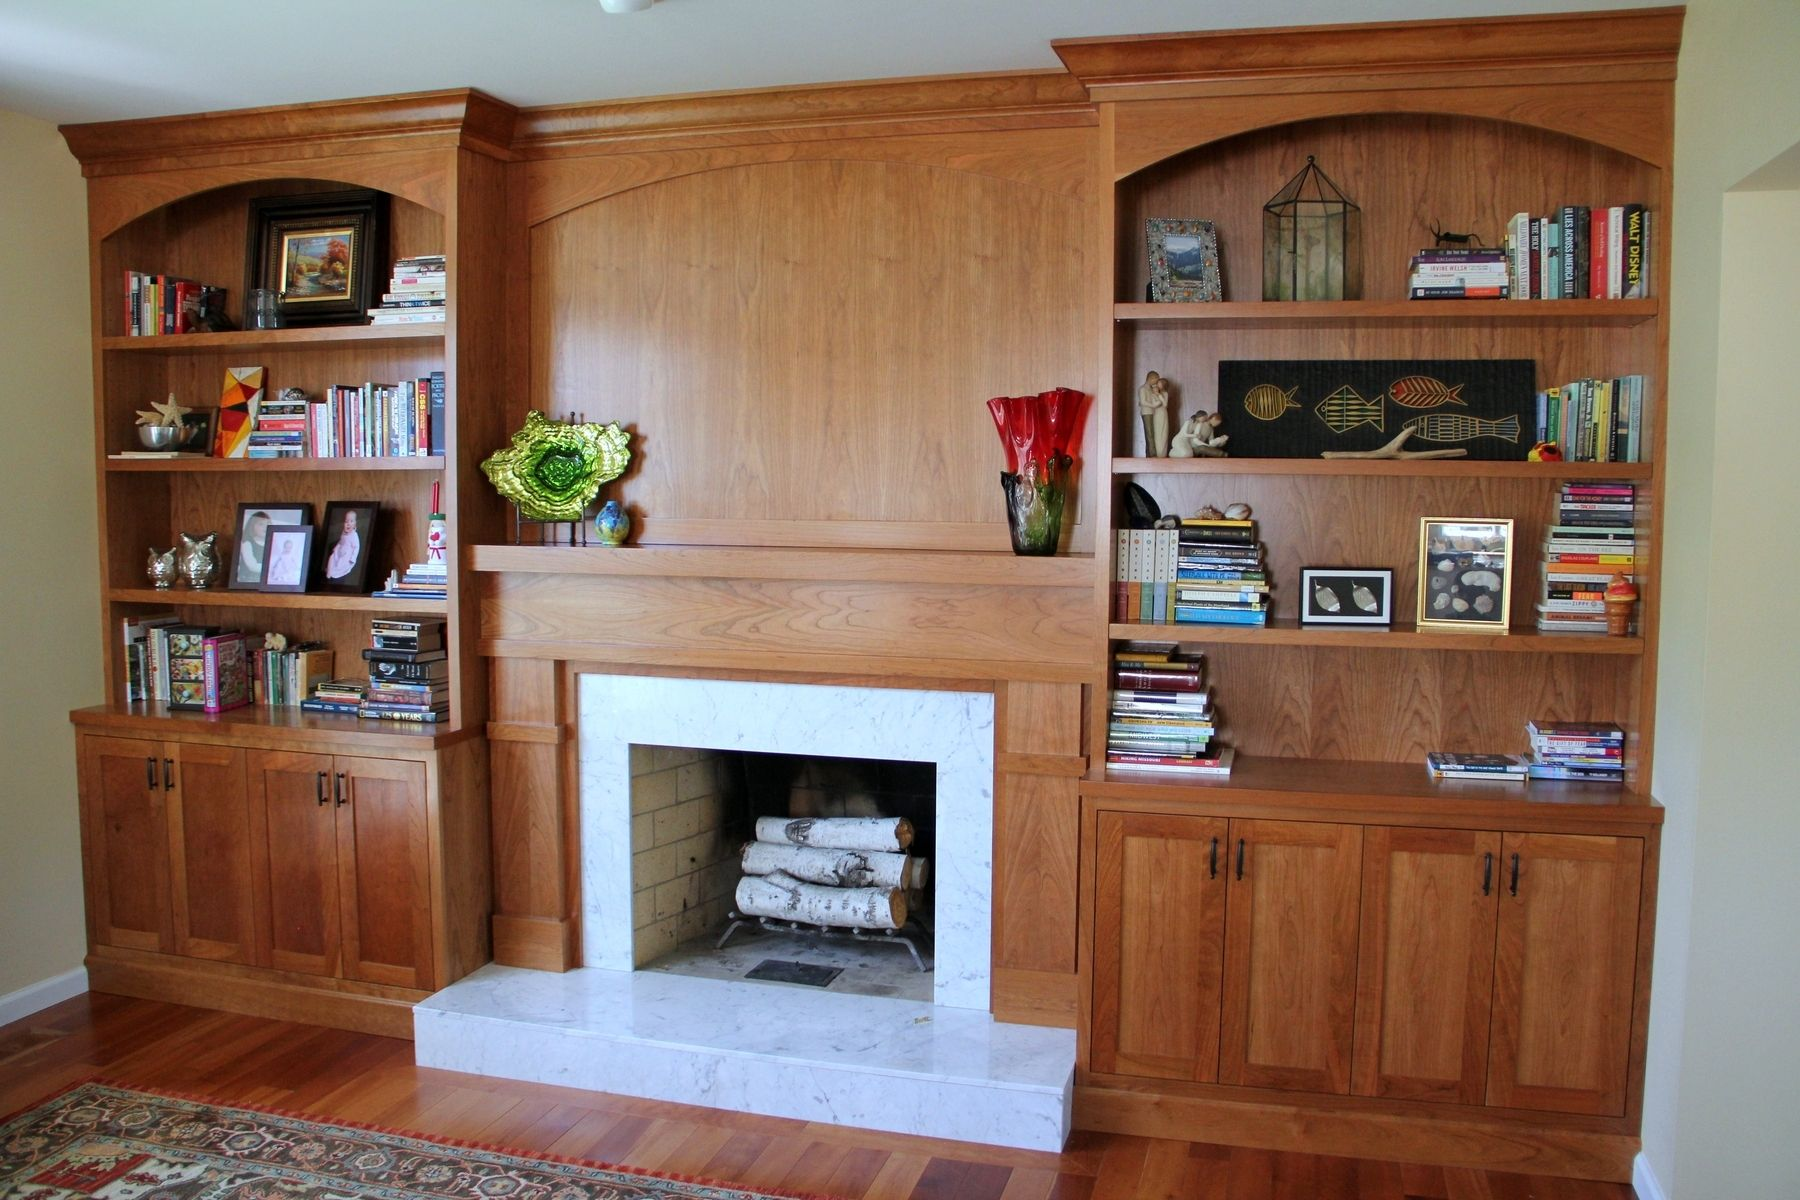 These built-in bookcases and fireplace surround replaced a simple fireplace mantle. The client chose to have these built-ins made form cherry wood. Th…